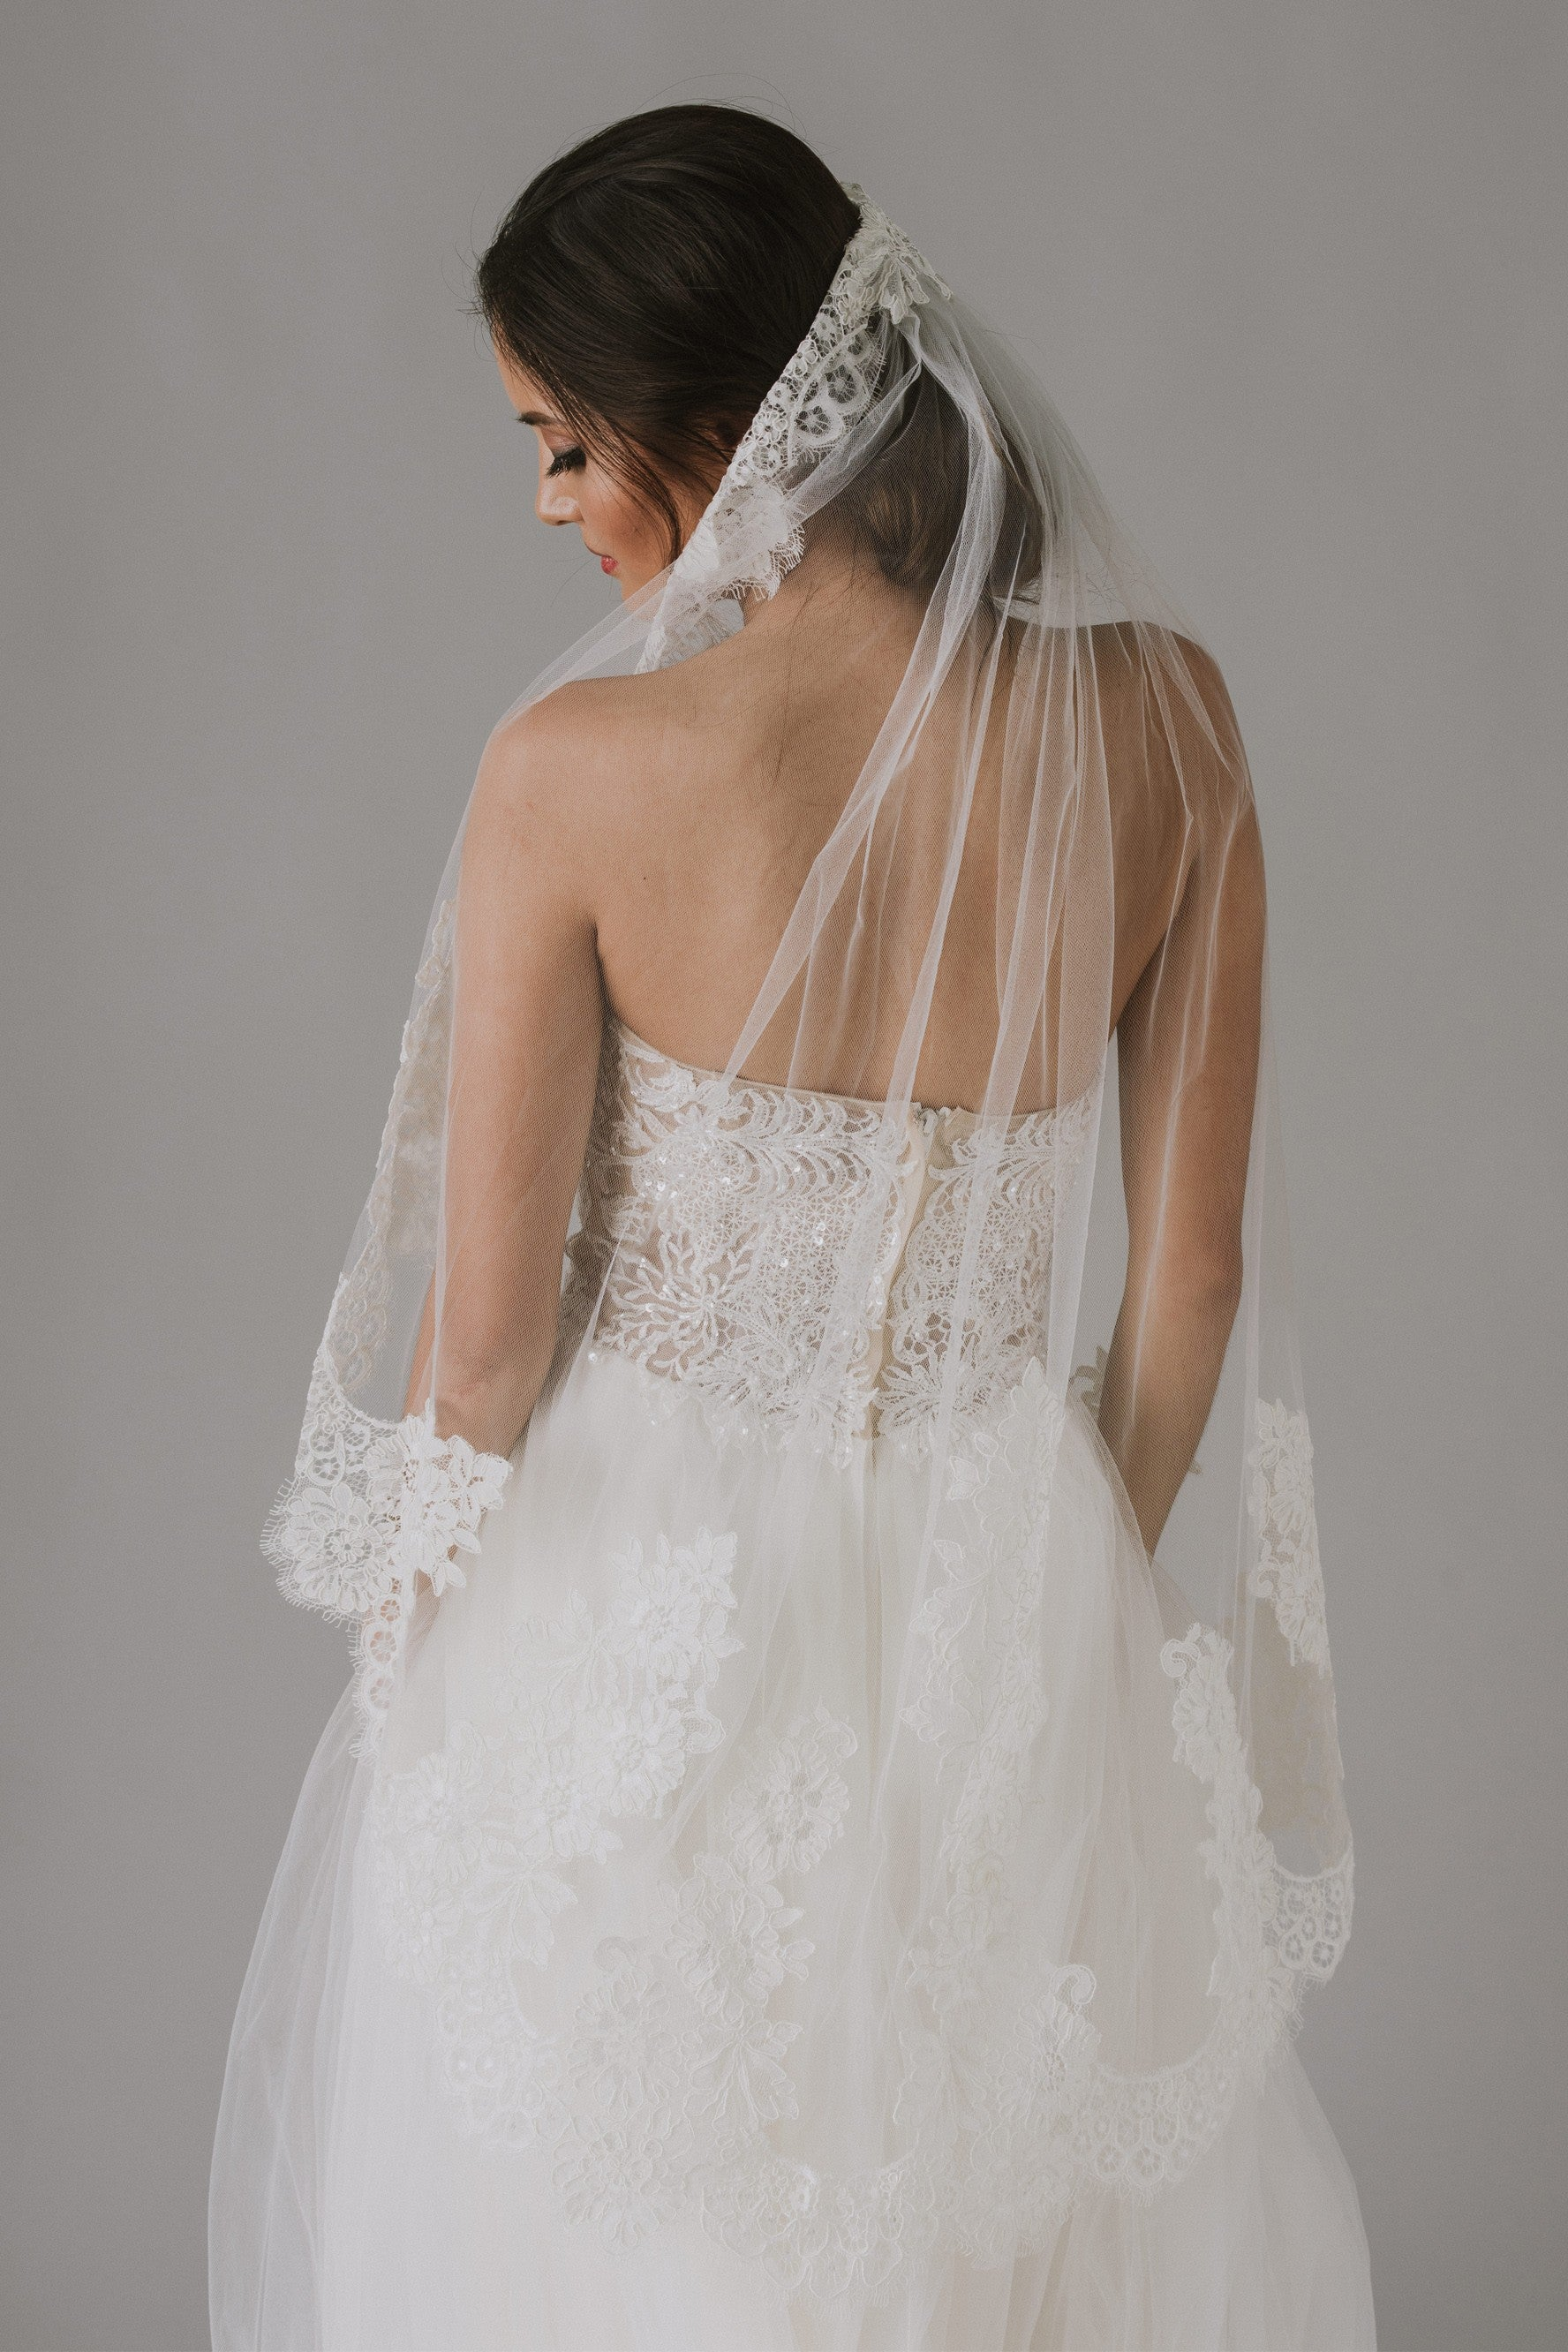 One Tier Mid Veil with Trailing Lace-WPD16266M